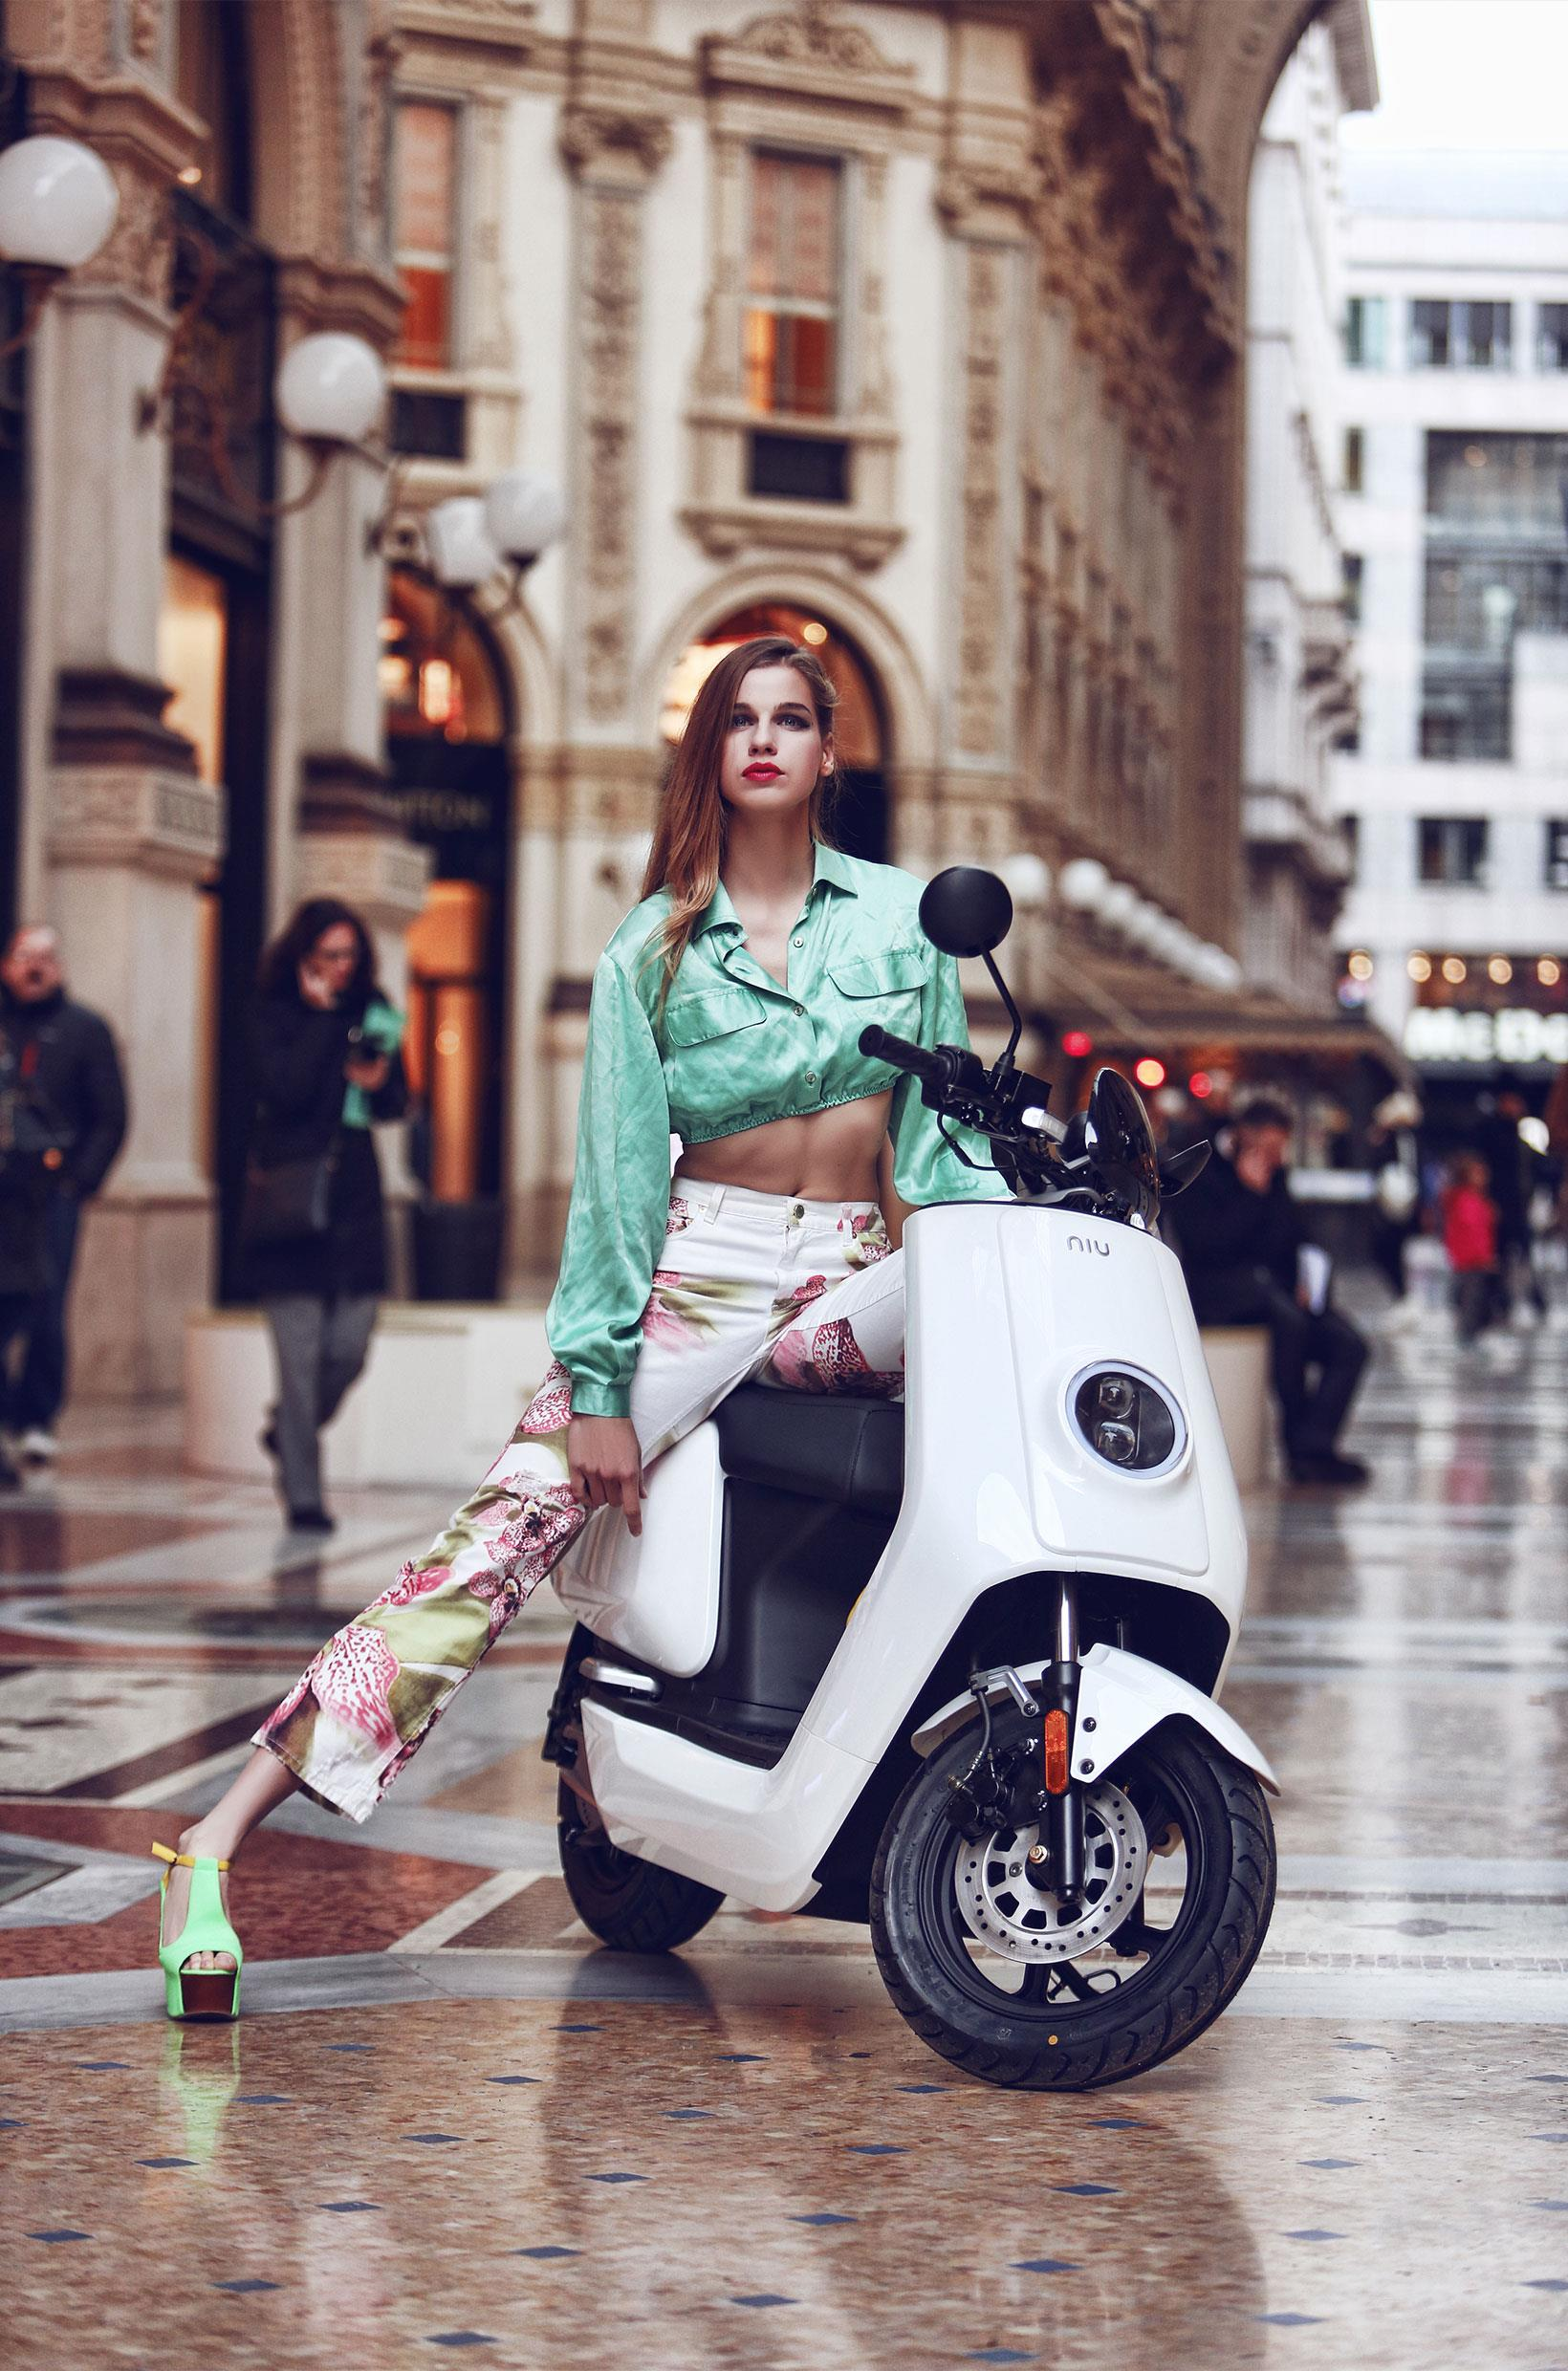 Acheter un scooter à Paris - niu-paris